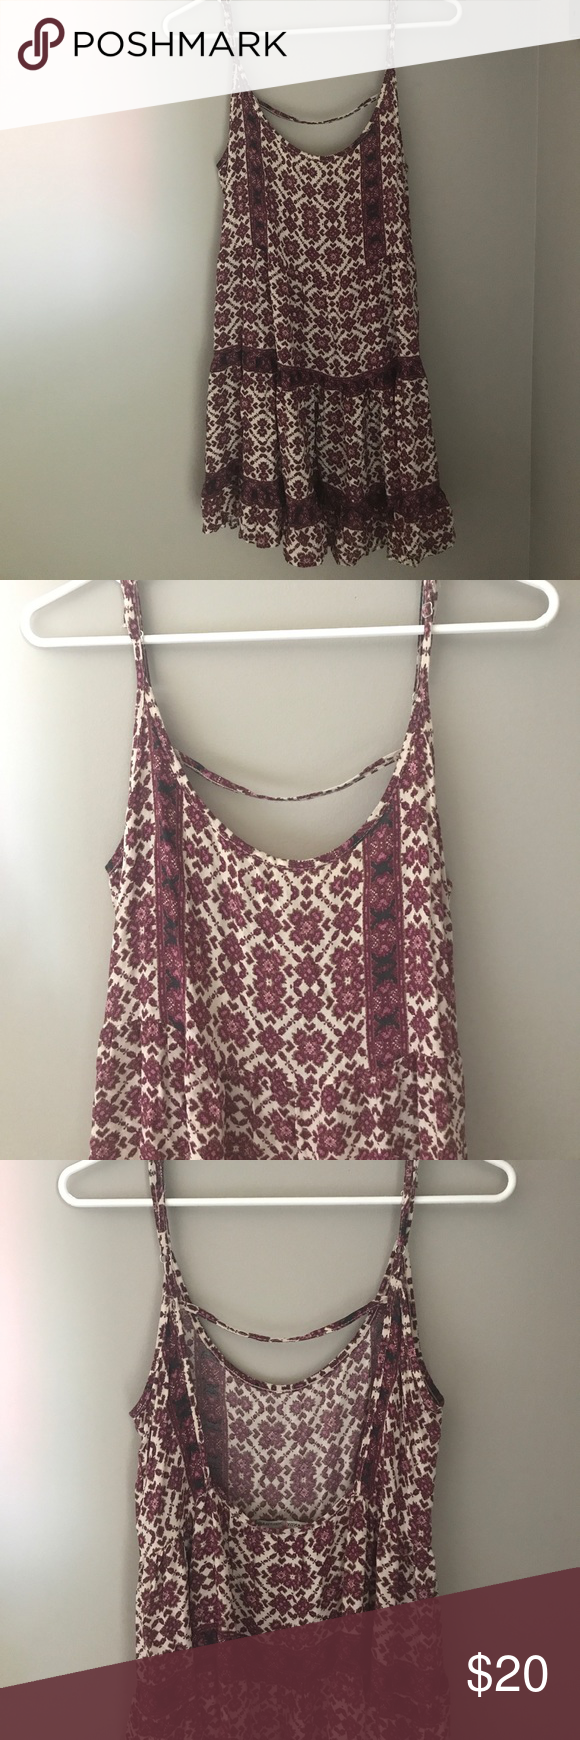 """Brandy Melville Dress Barley worn, cute summery dress with a """"U"""" shaped scoop in the back. Can also be worn in the fall with a leather jacket! Brandy Melville Dresses Mini"""